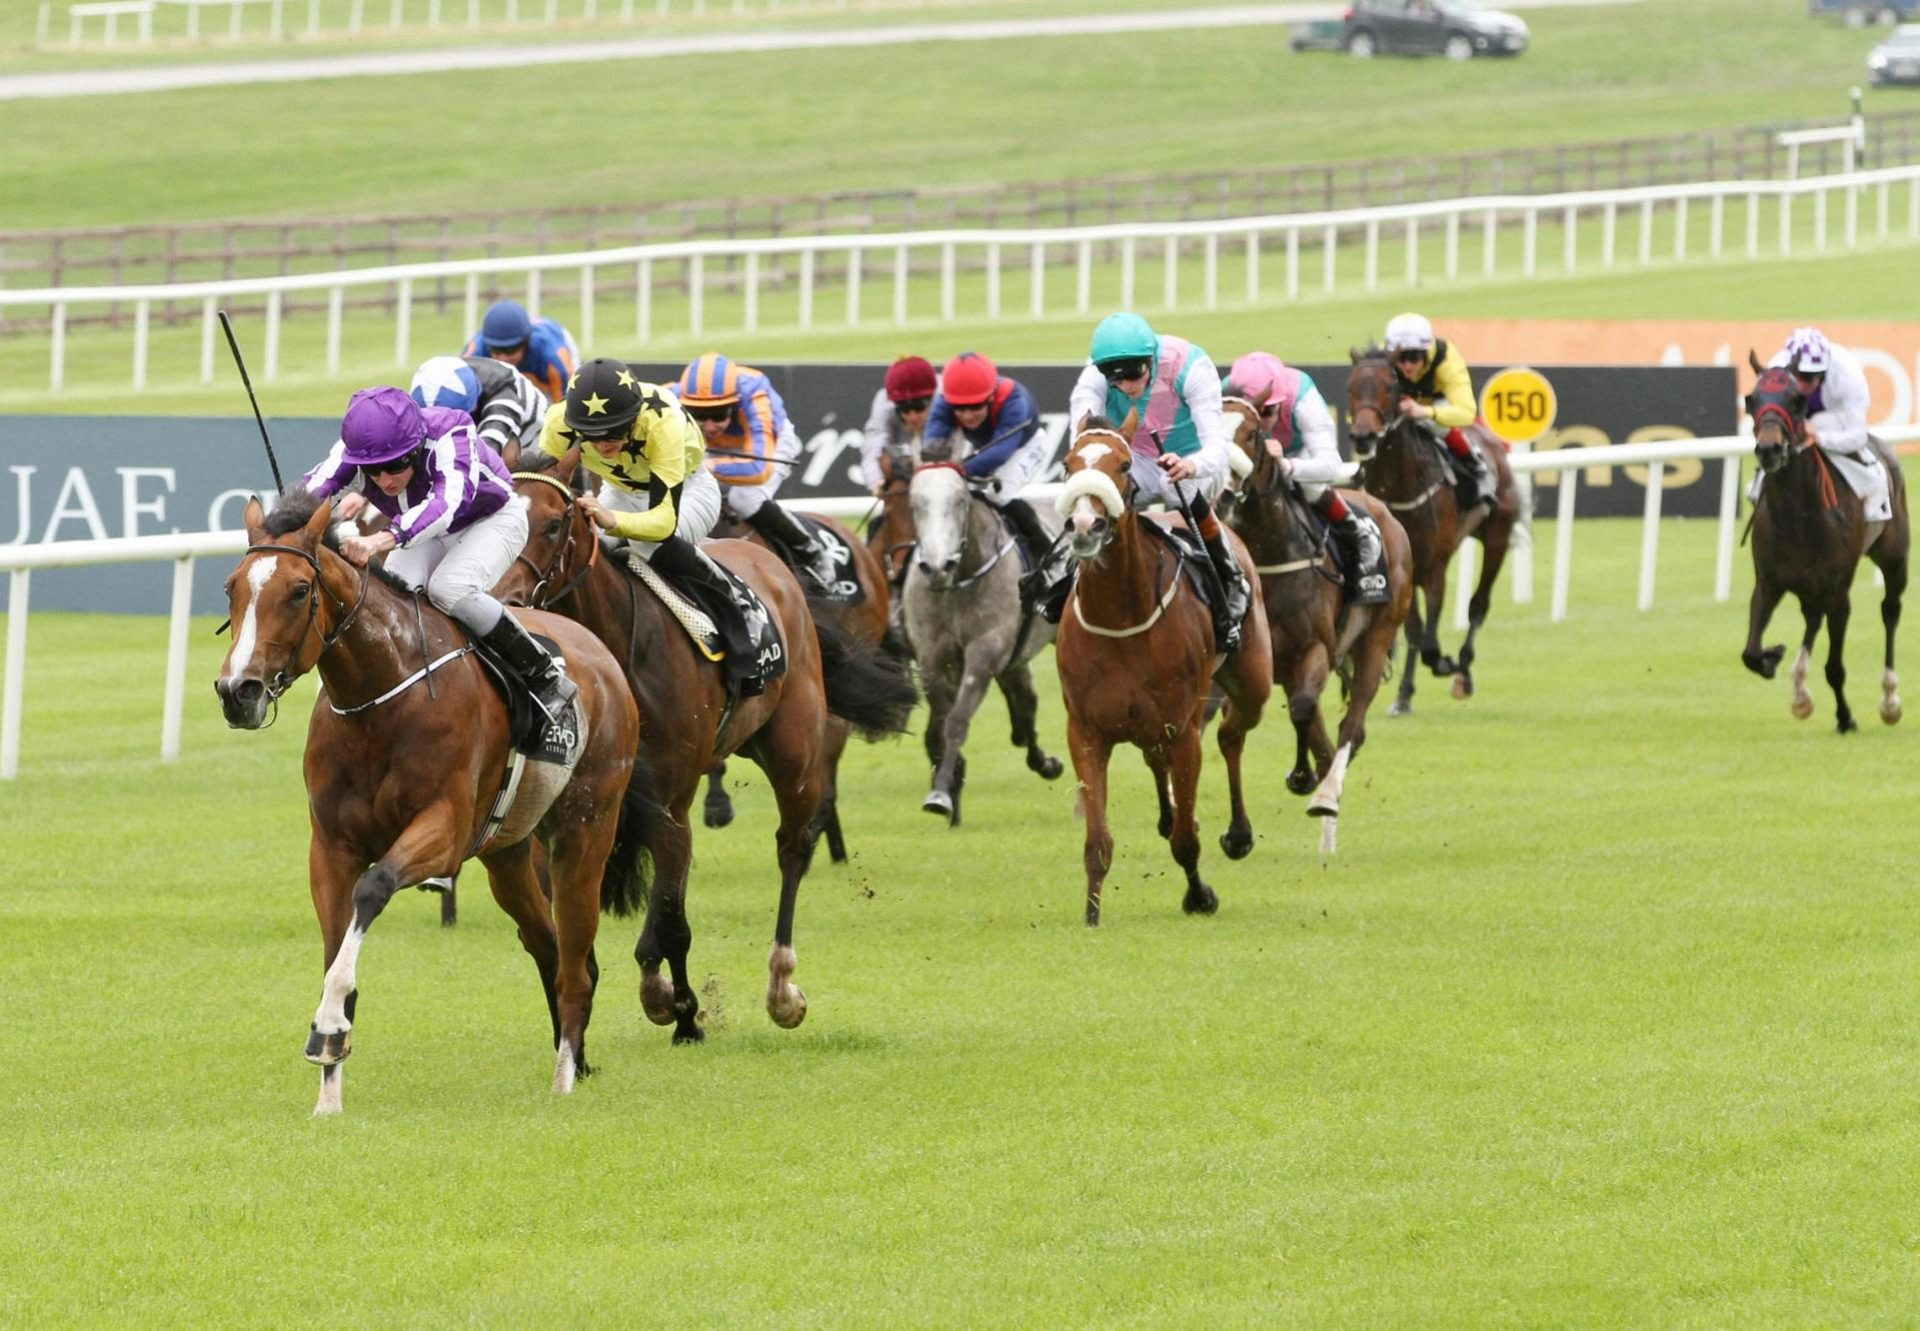 Marvellous (Galileo) winning the G1 Irish 1000 Guineas at the Curragh